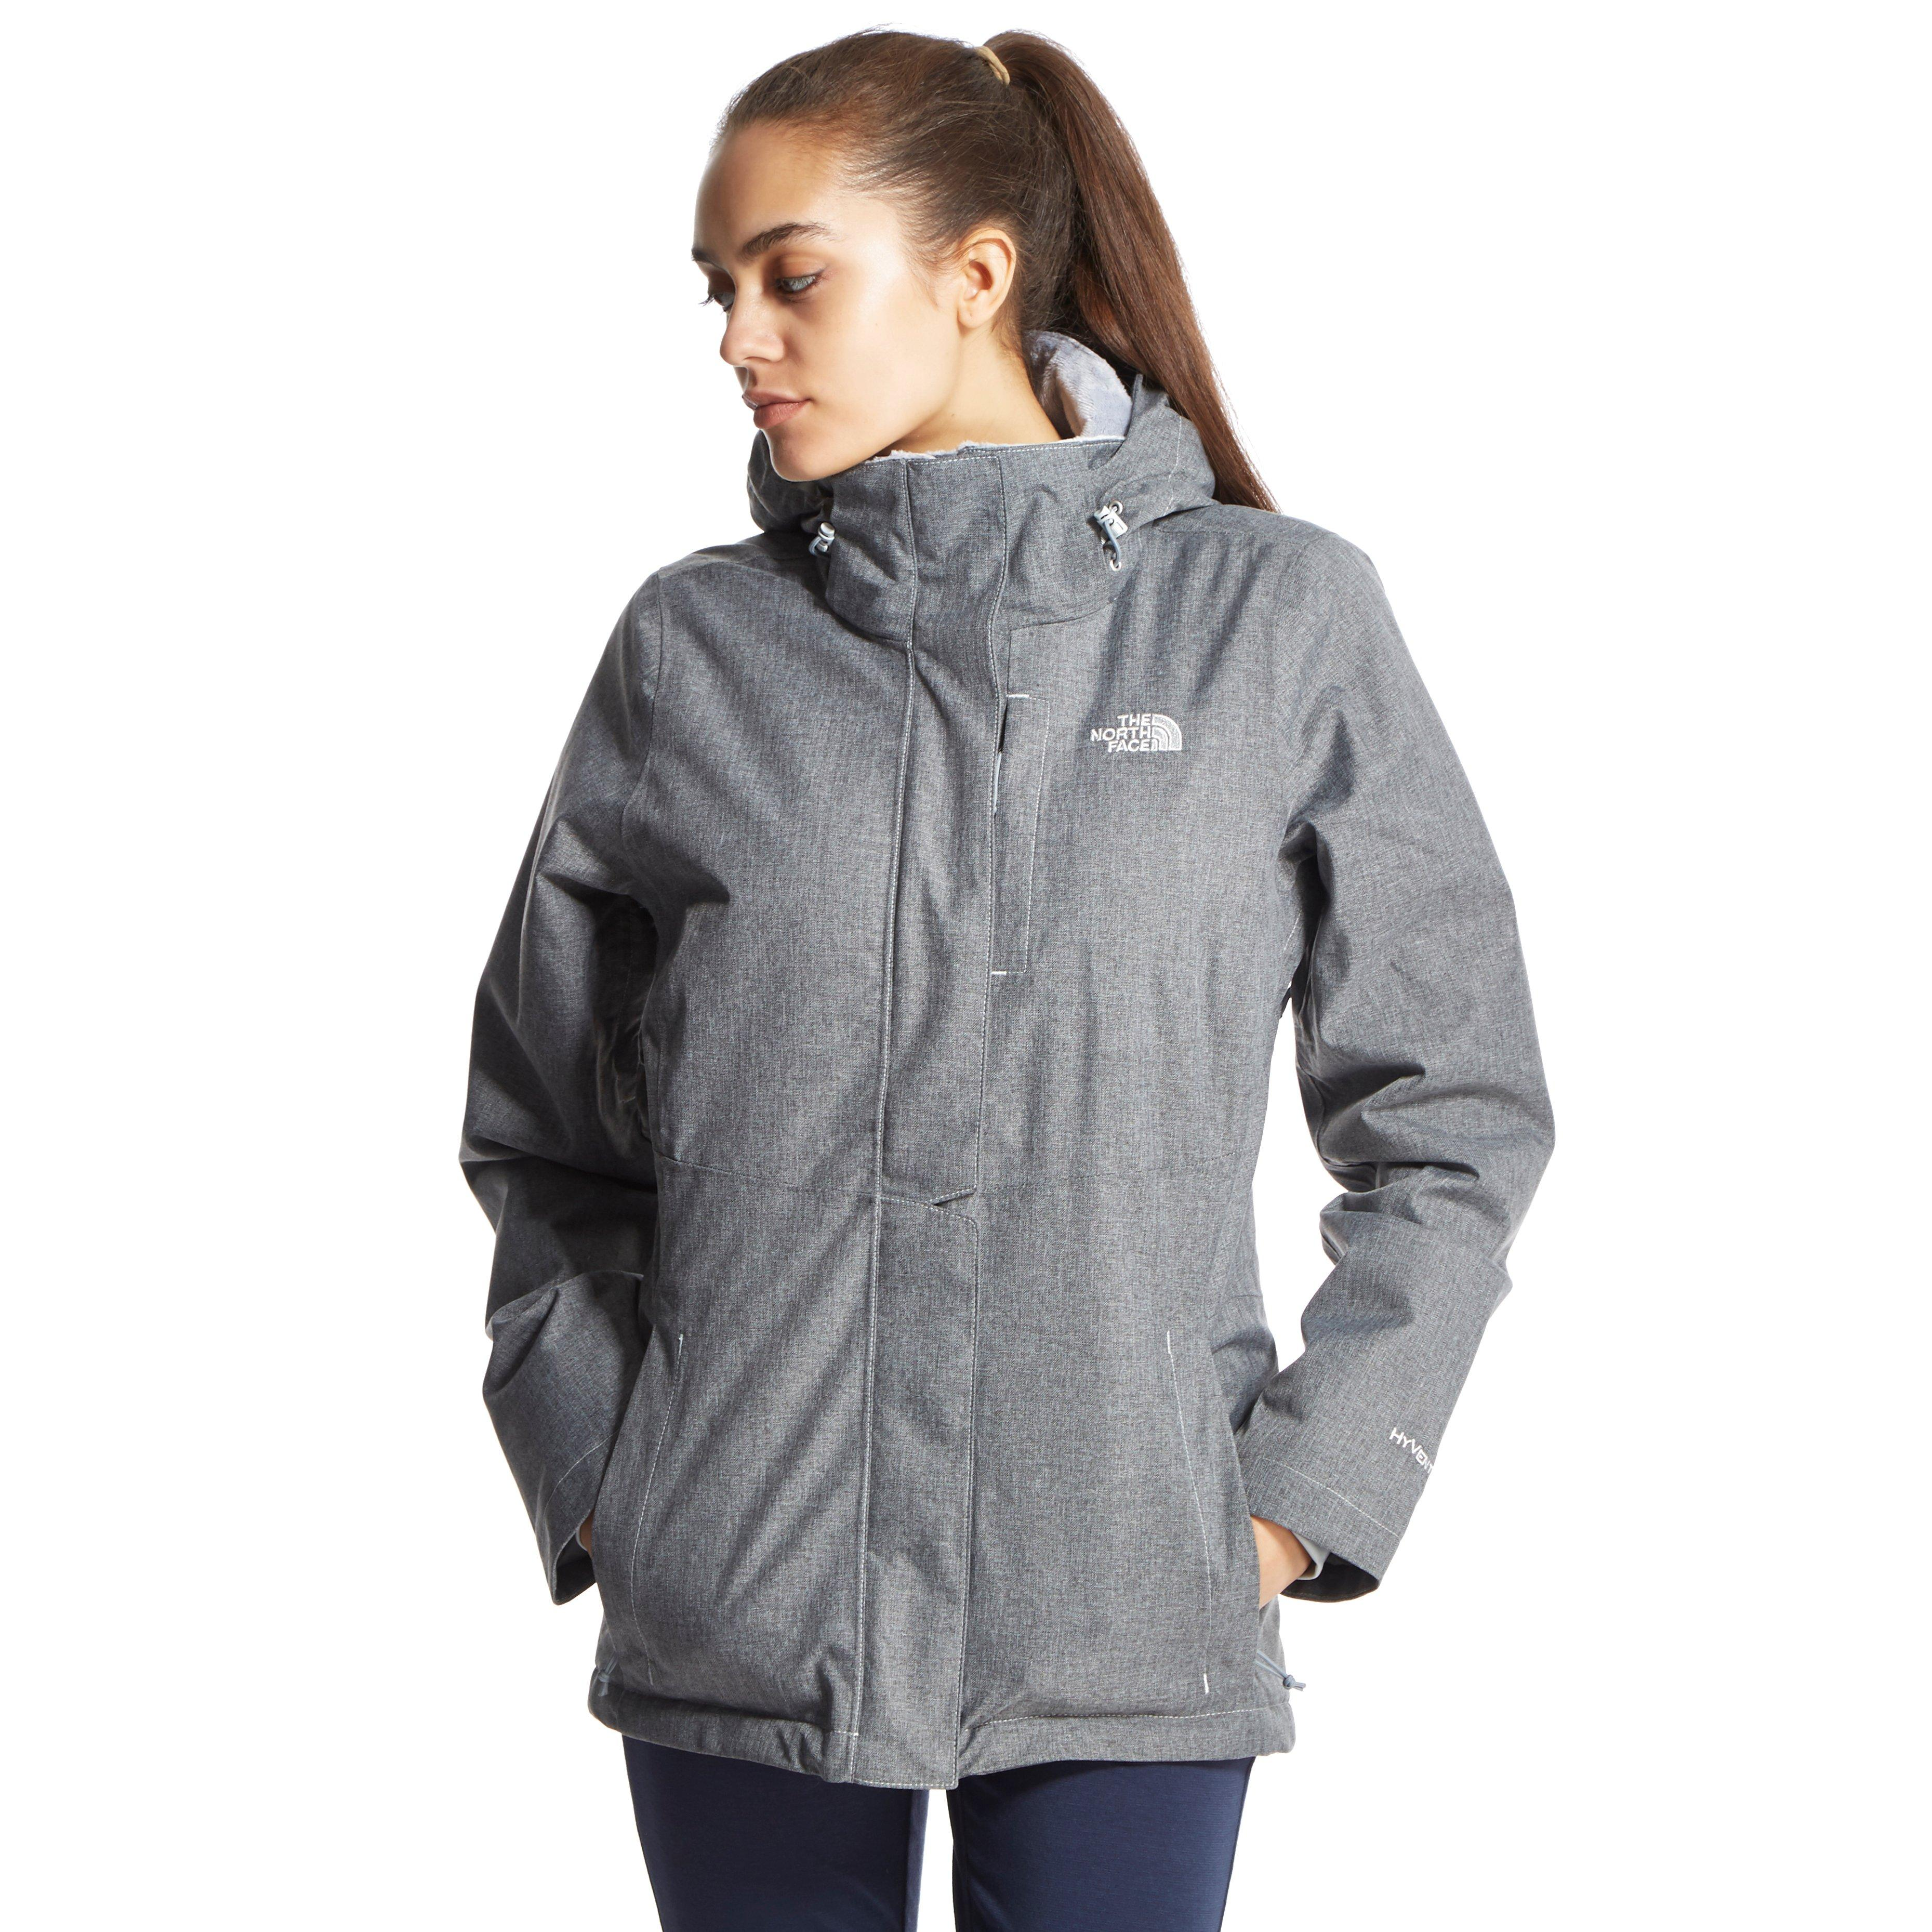 the north face inlux jacket women 39 s jacket compare compare outdoor jacket prices jacket. Black Bedroom Furniture Sets. Home Design Ideas